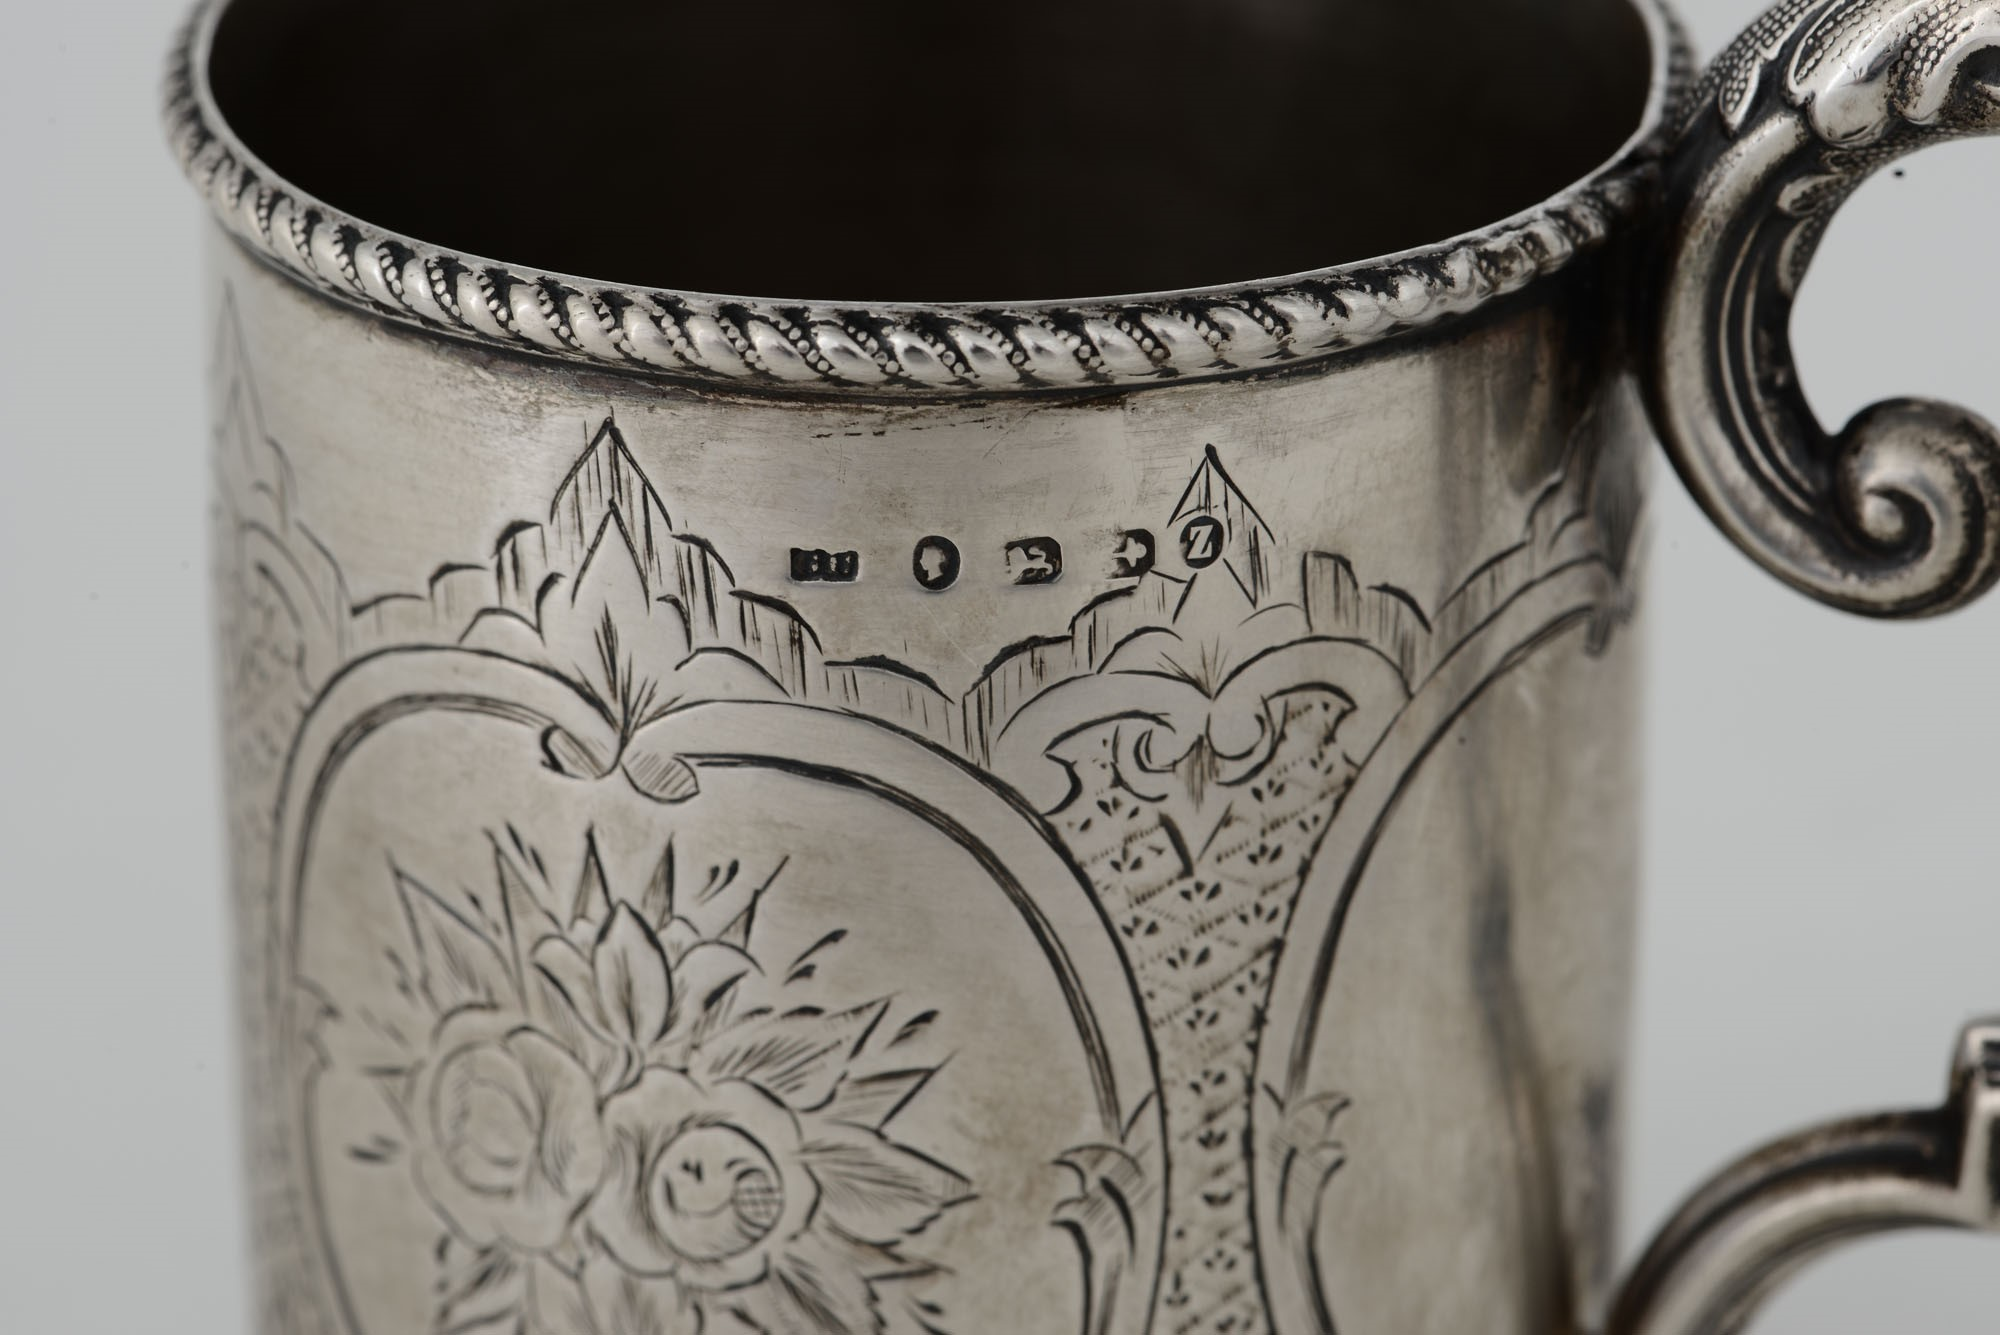 Lot 26 - A christening cup, G. Unite, Birmingham, 1874 - Molten, embossed and chiselled silver -